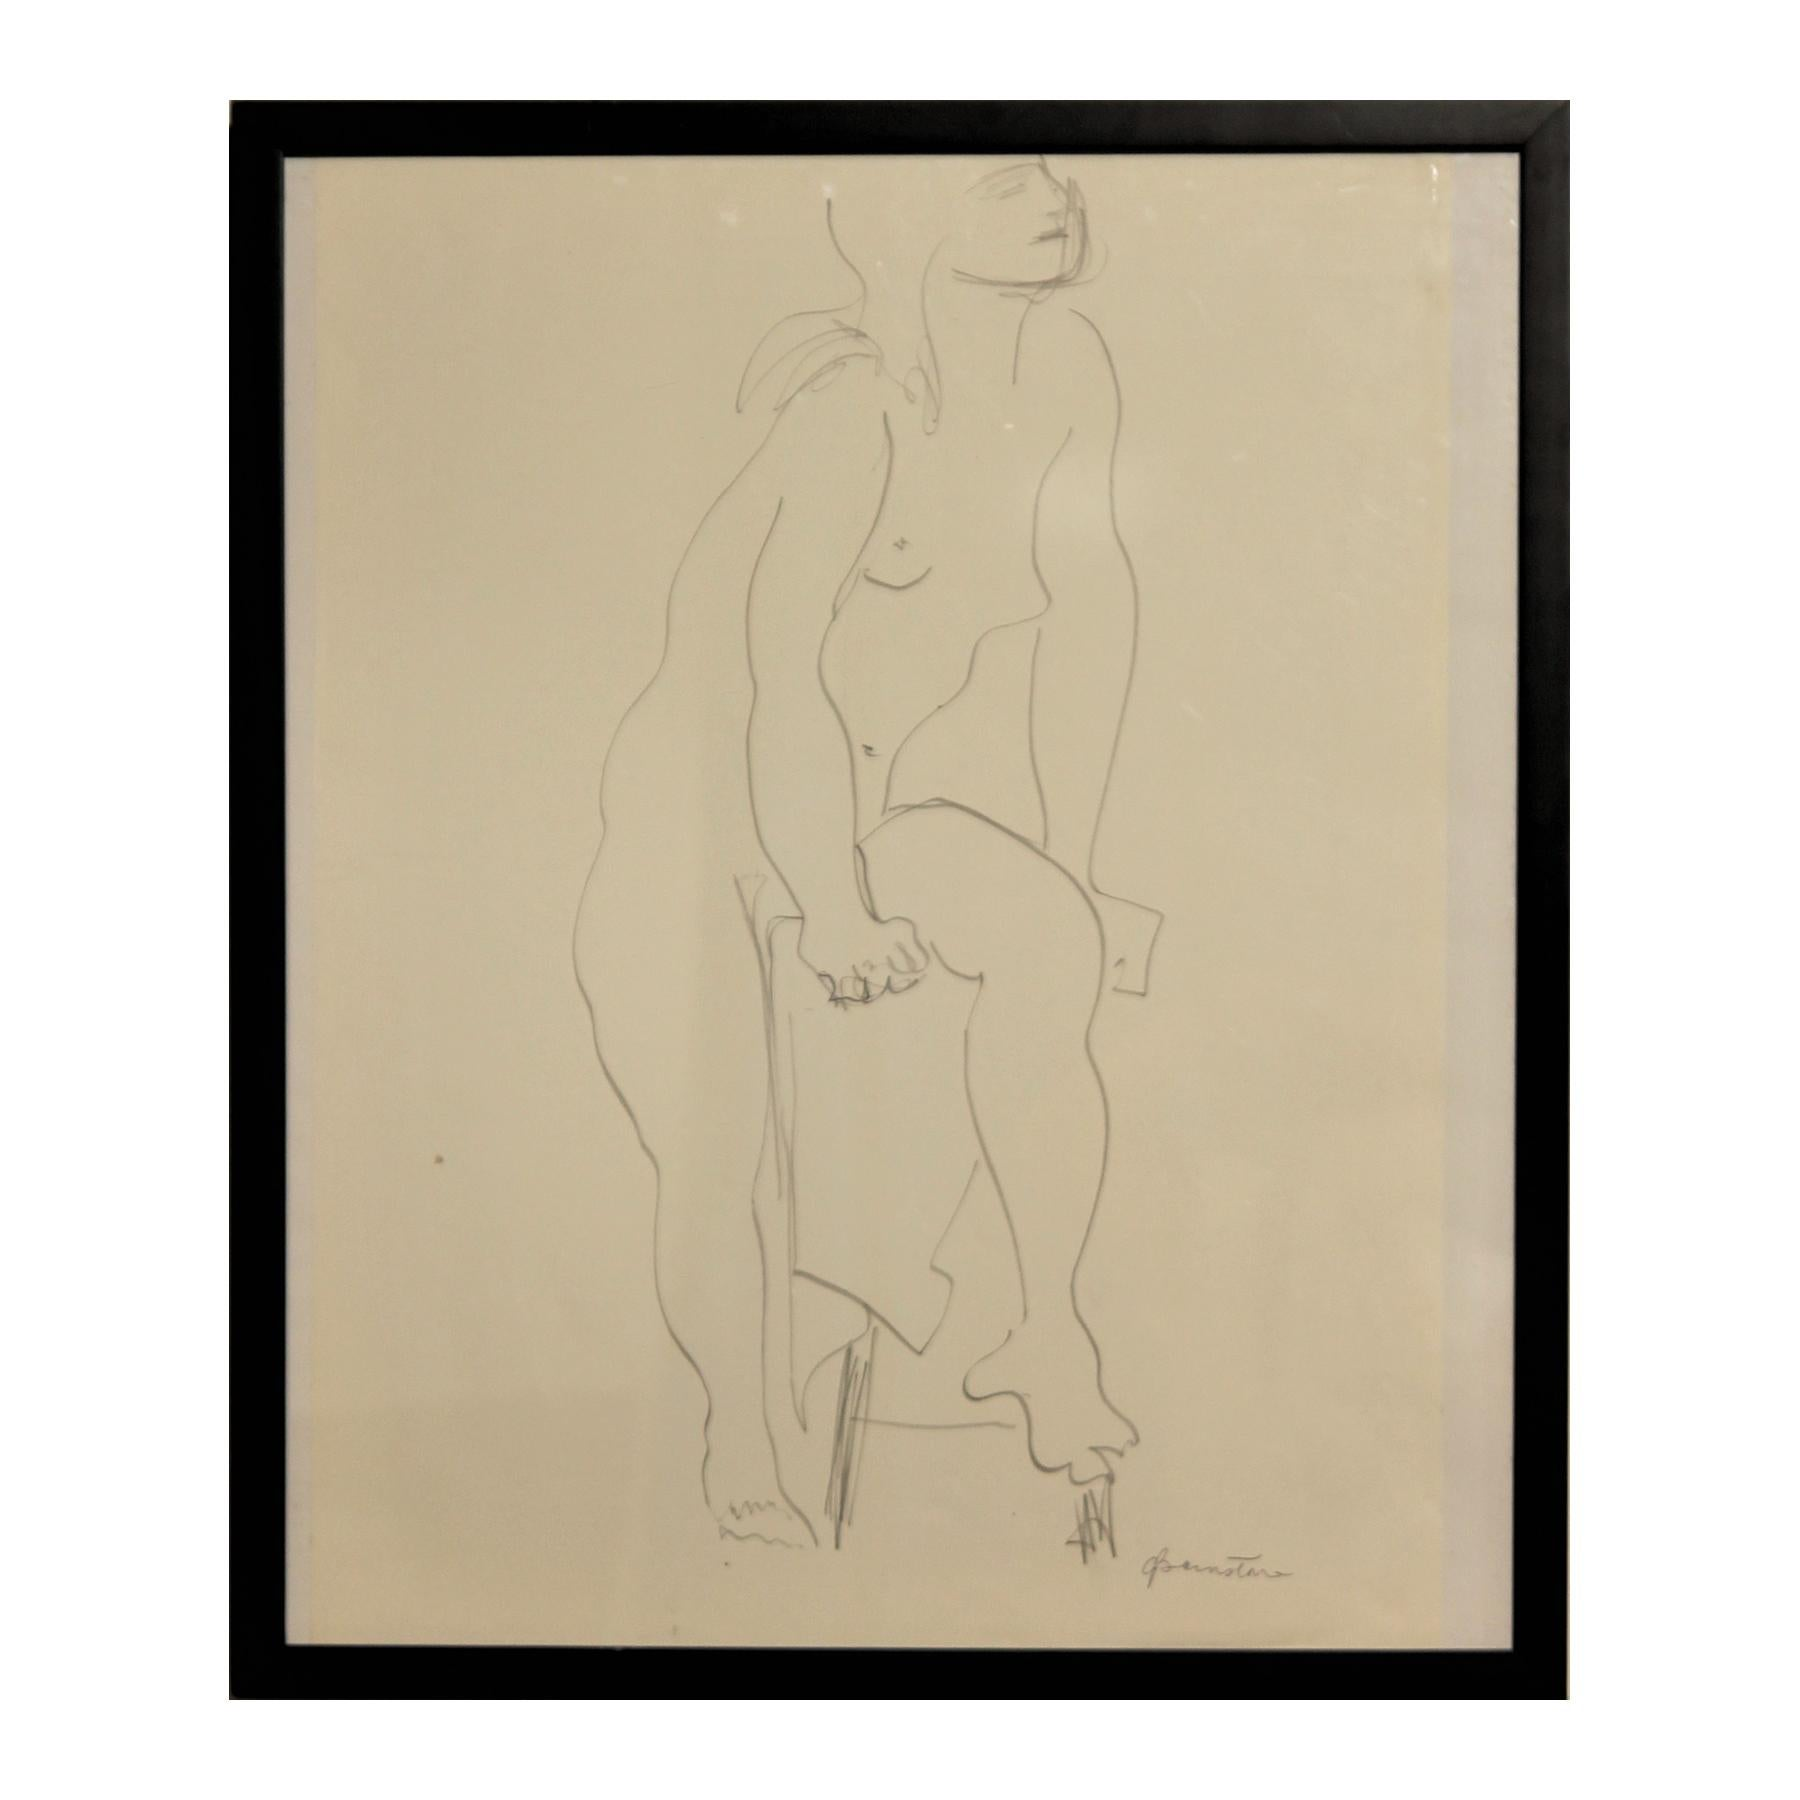 Abstract Pencil Contour Line Drawing of Female Nude with Raised Leg